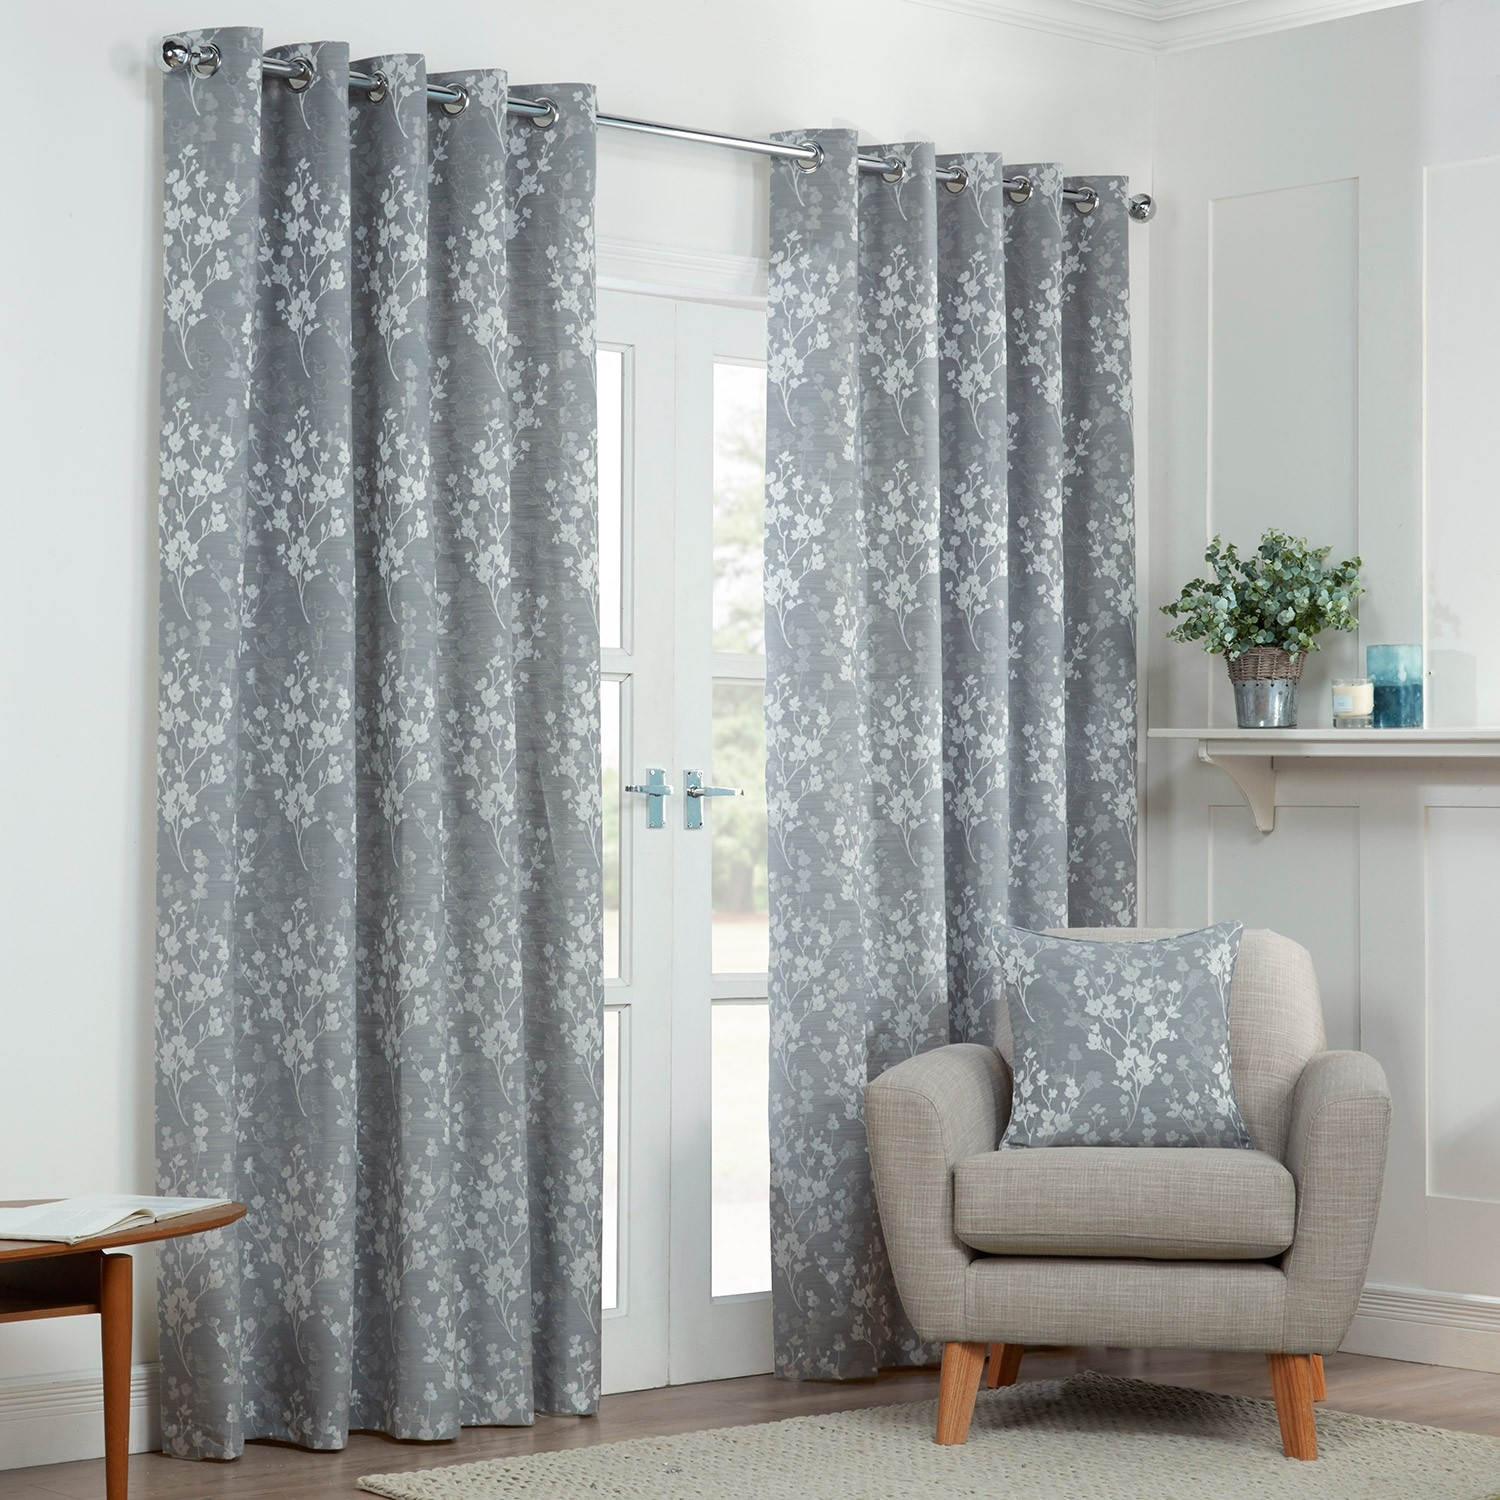 Blossom Silver Grey Floral Lined Eyelet Curtains Pair Julian For Grey Eyelet Curtains (Image 3 of 25)